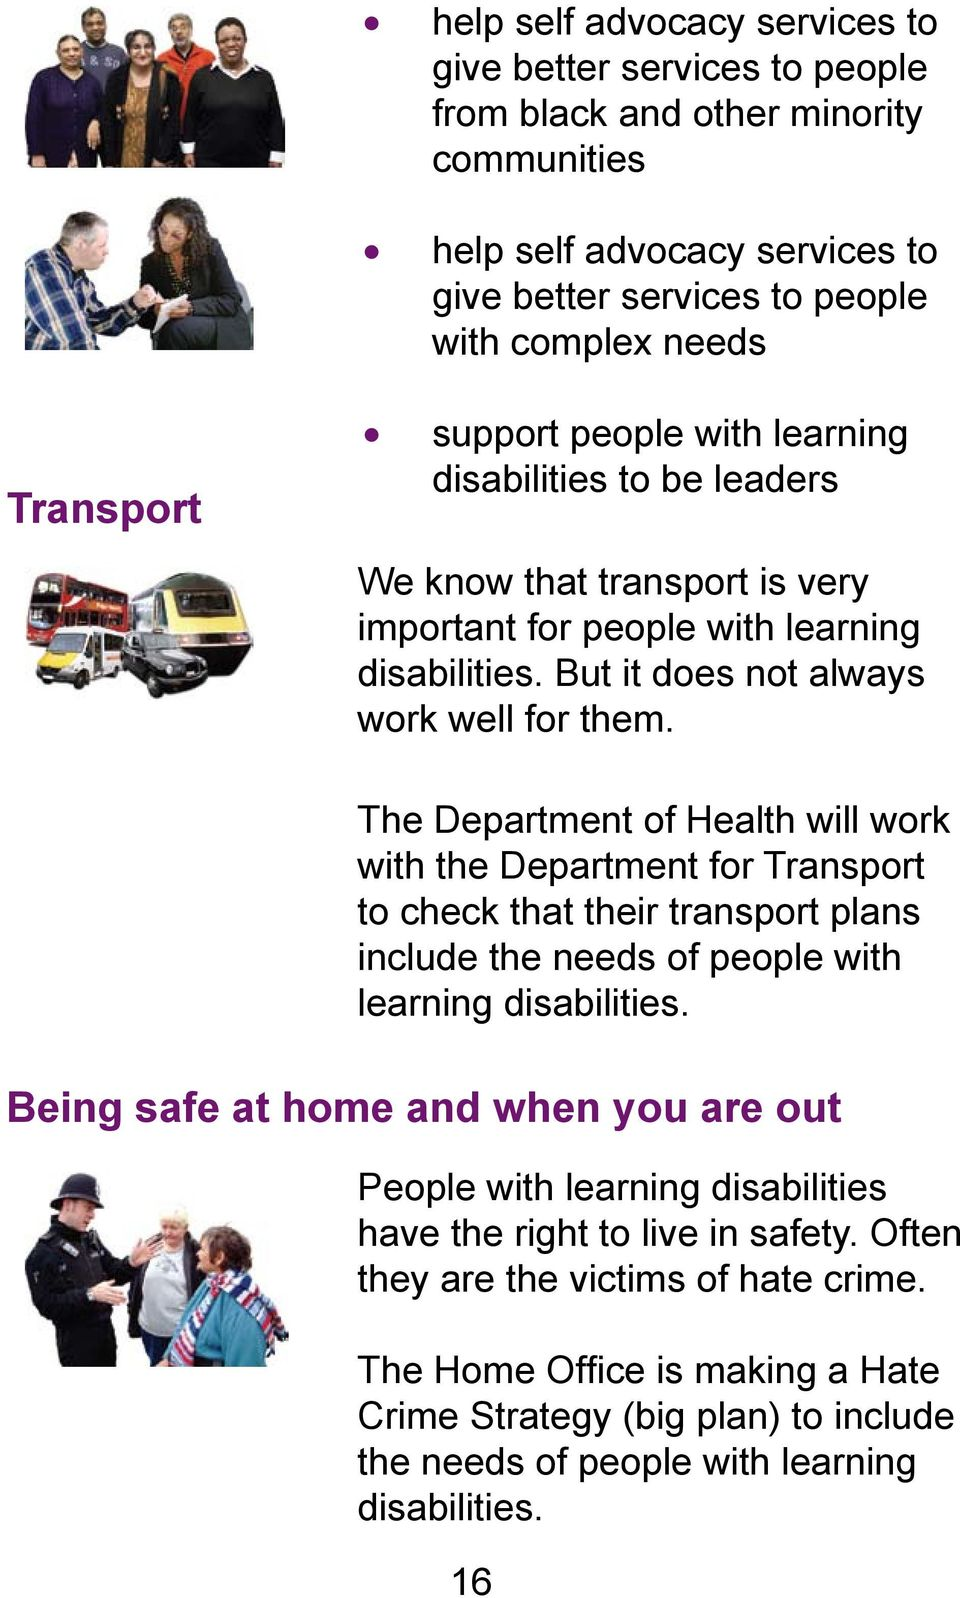 The Department of Health will work with the Department for Transport to check that their transport plans include the needs of people with learning disabilities.